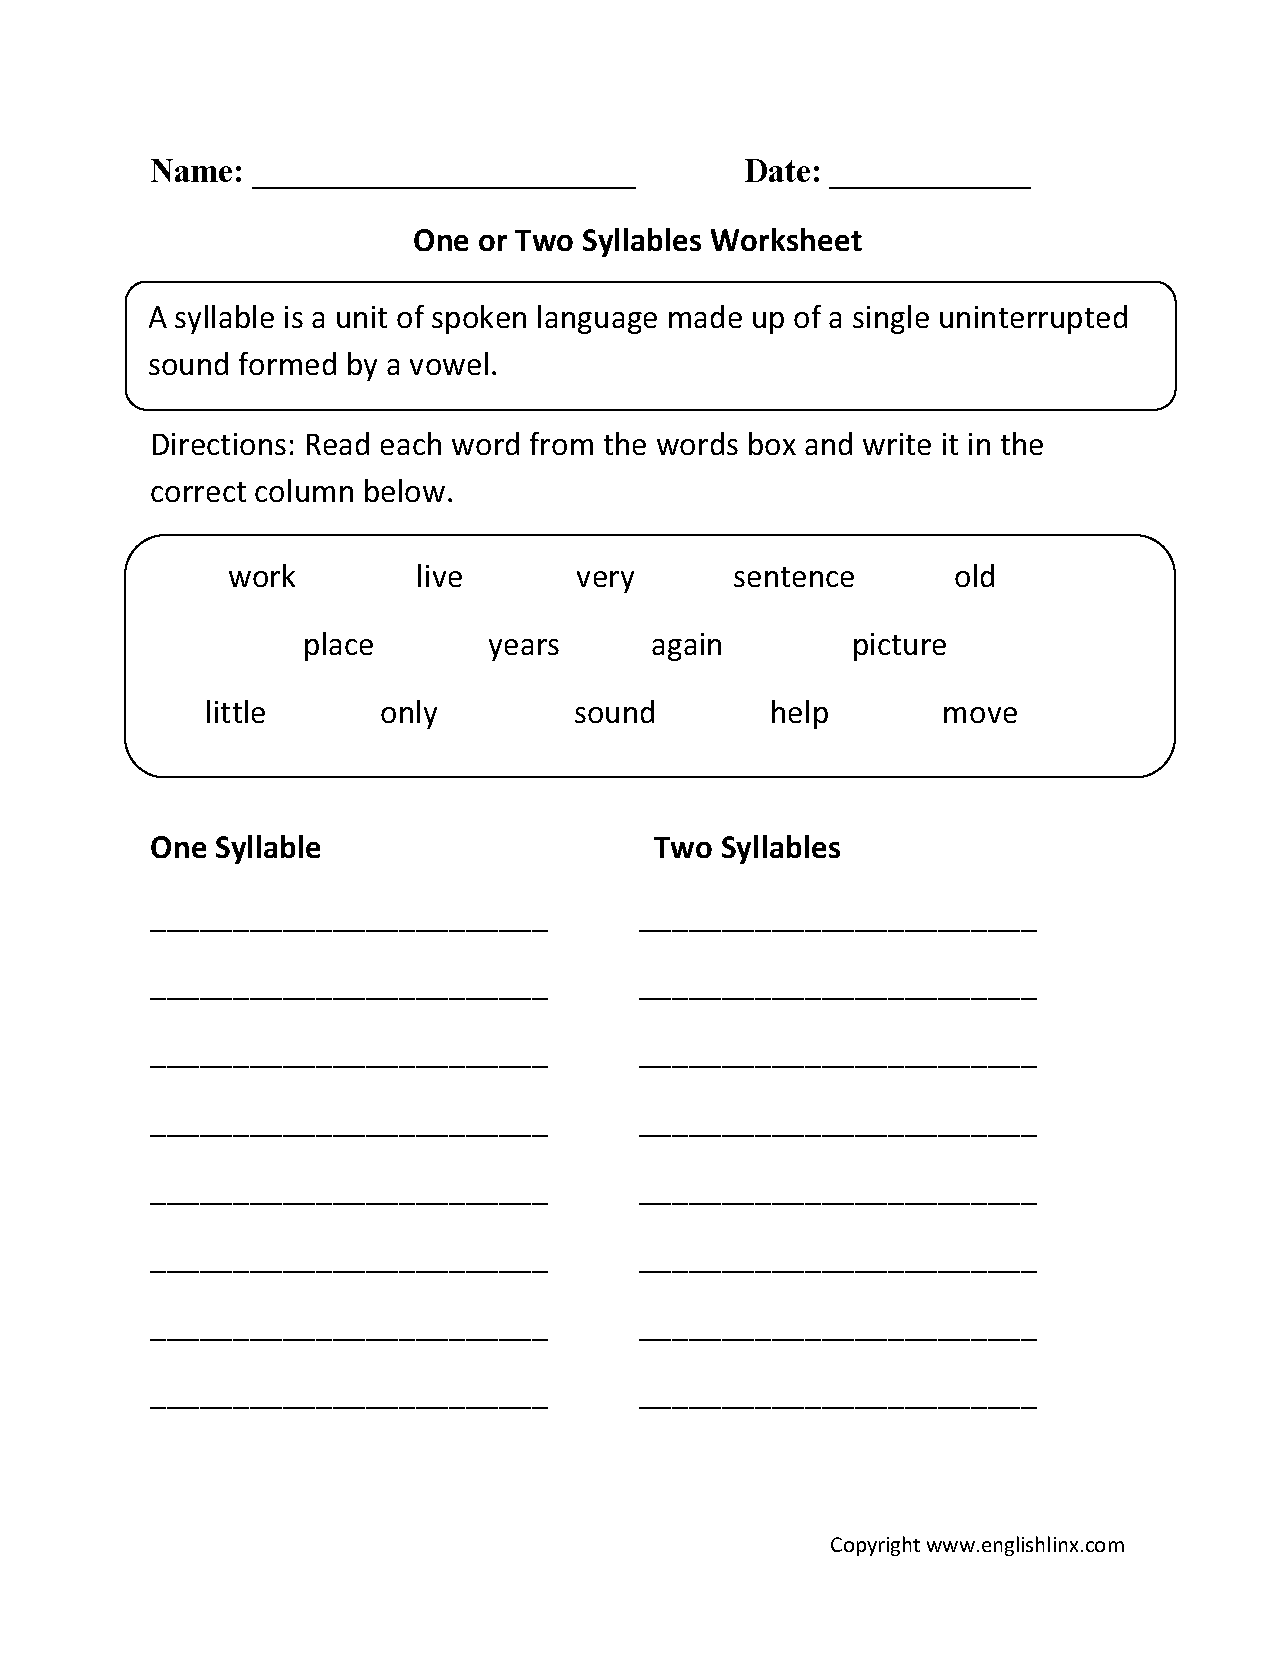 Weirdmailus  Marvelous Englishlinxcom  Syllables Worksheets With Marvelous Syllables Worksheets With Amusing Descriptive Adjectives Worksheet Also Addition And Subtraction Equations Worksheets In Addition Life Cycle Of A Butterfly Worksheets And Triangle Trade Worksheet As Well As Parallel Intersecting And Perpendicular Lines Worksheet Additionally Place Value Th Grade Worksheets From Englishlinxcom With Weirdmailus  Marvelous Englishlinxcom  Syllables Worksheets With Amusing Syllables Worksheets And Marvelous Descriptive Adjectives Worksheet Also Addition And Subtraction Equations Worksheets In Addition Life Cycle Of A Butterfly Worksheets From Englishlinxcom